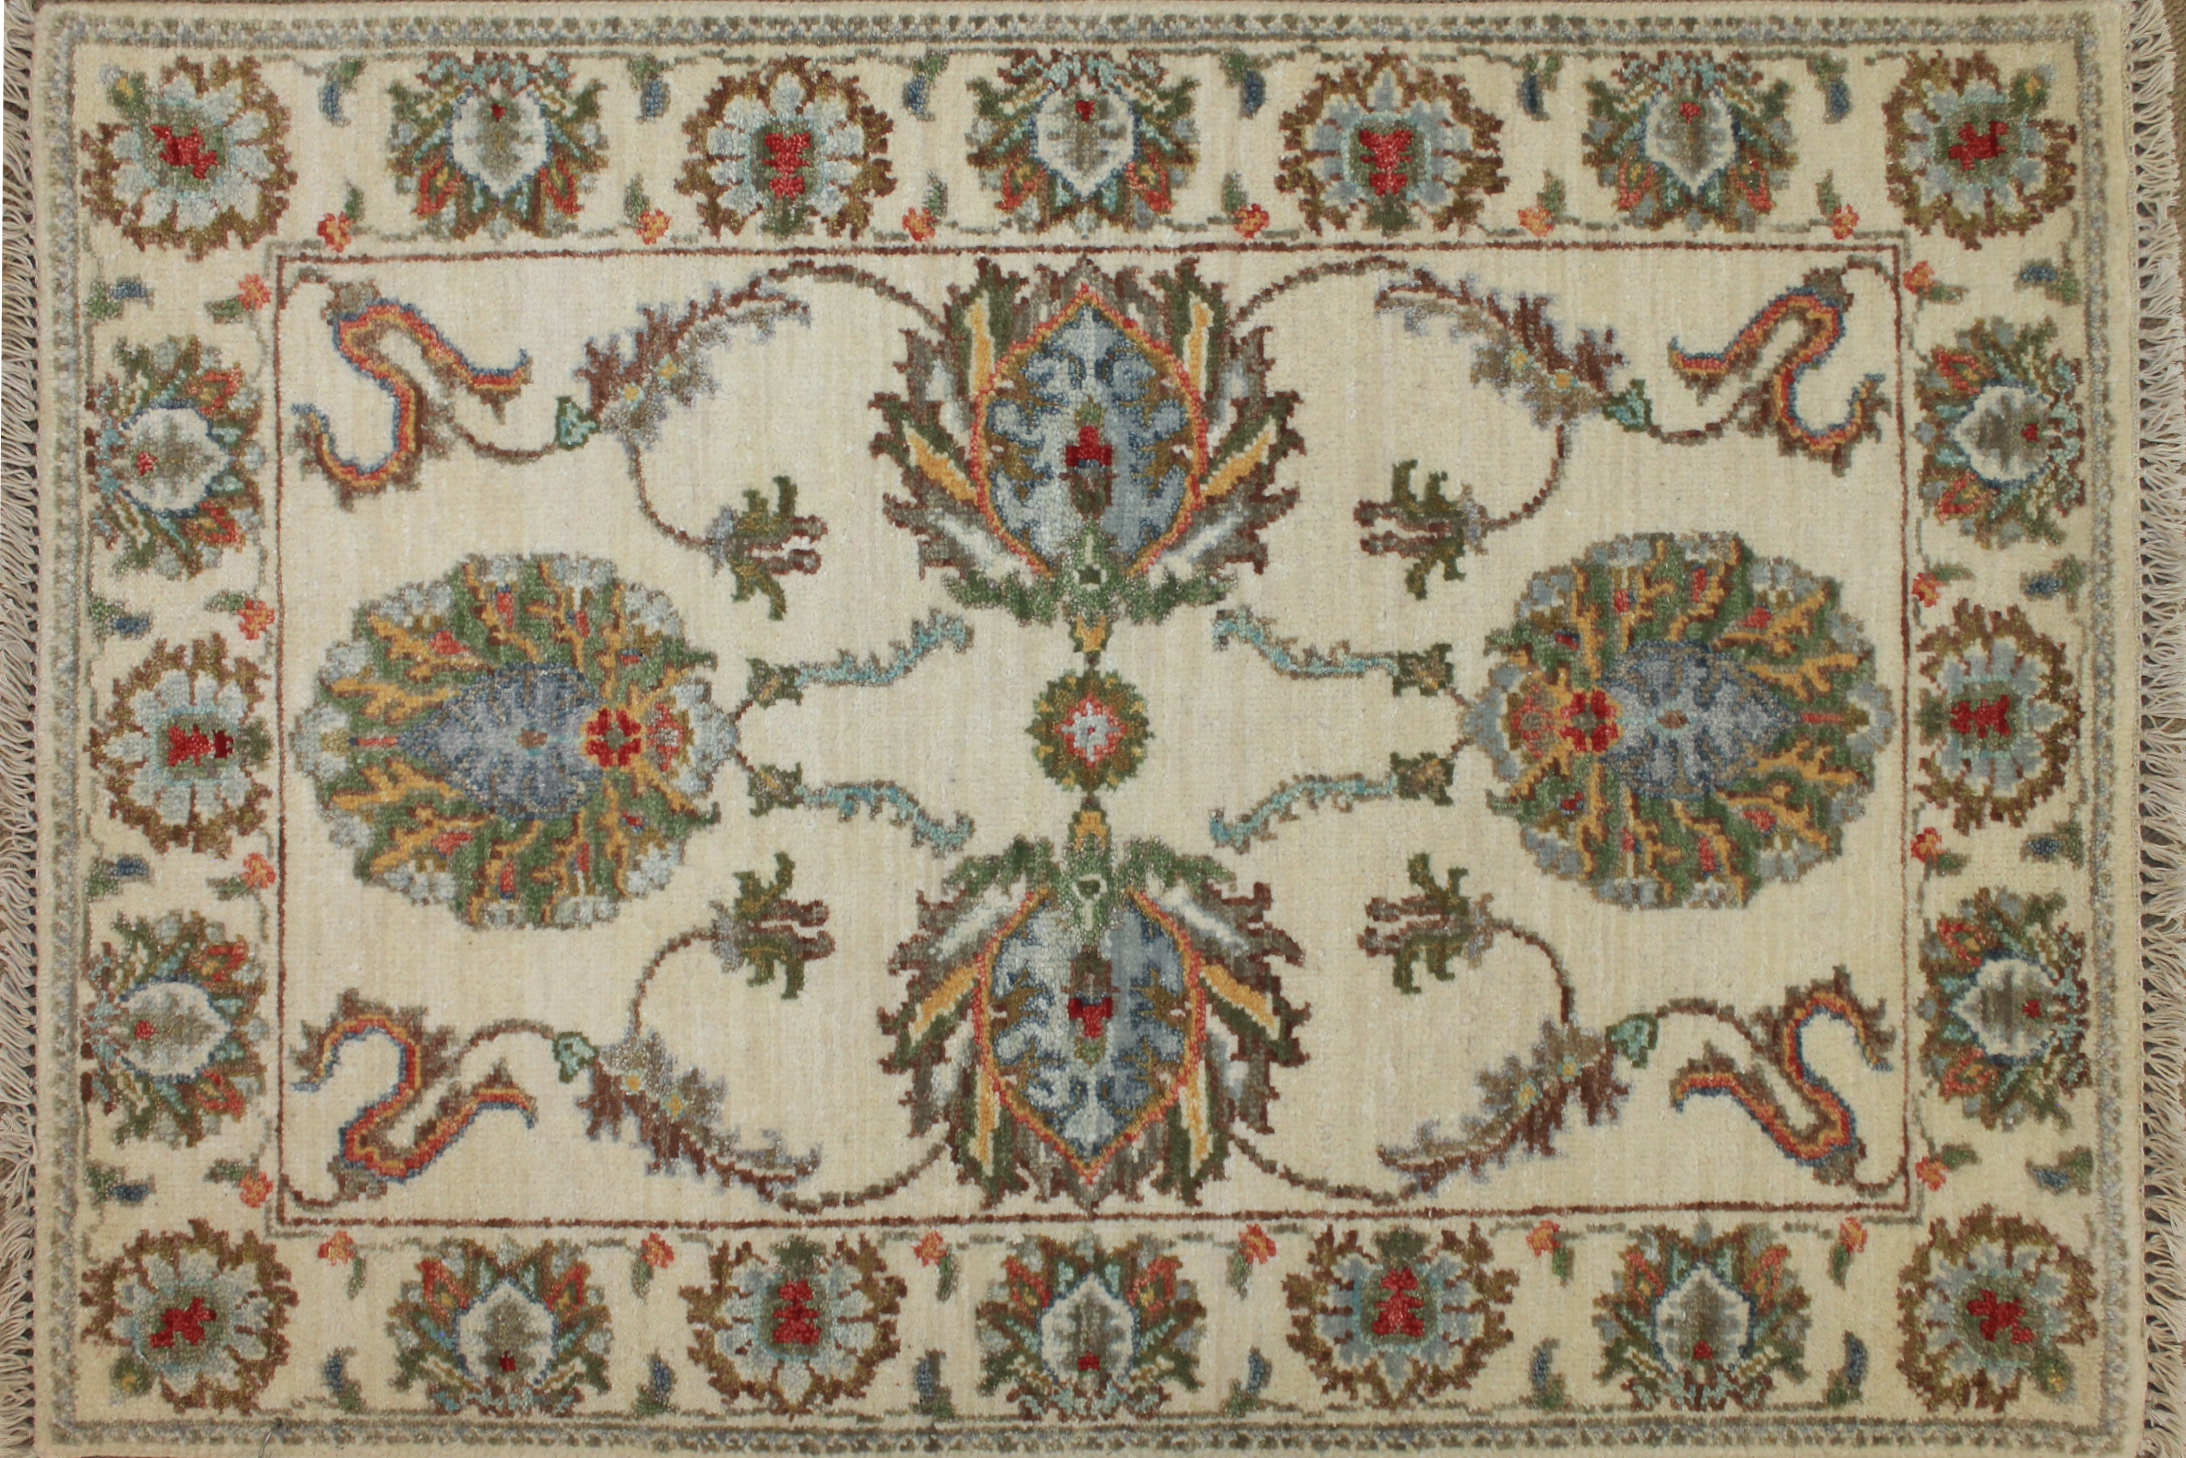 2X3 Traditional Hand Knotted Wool Area Rug - MR024785